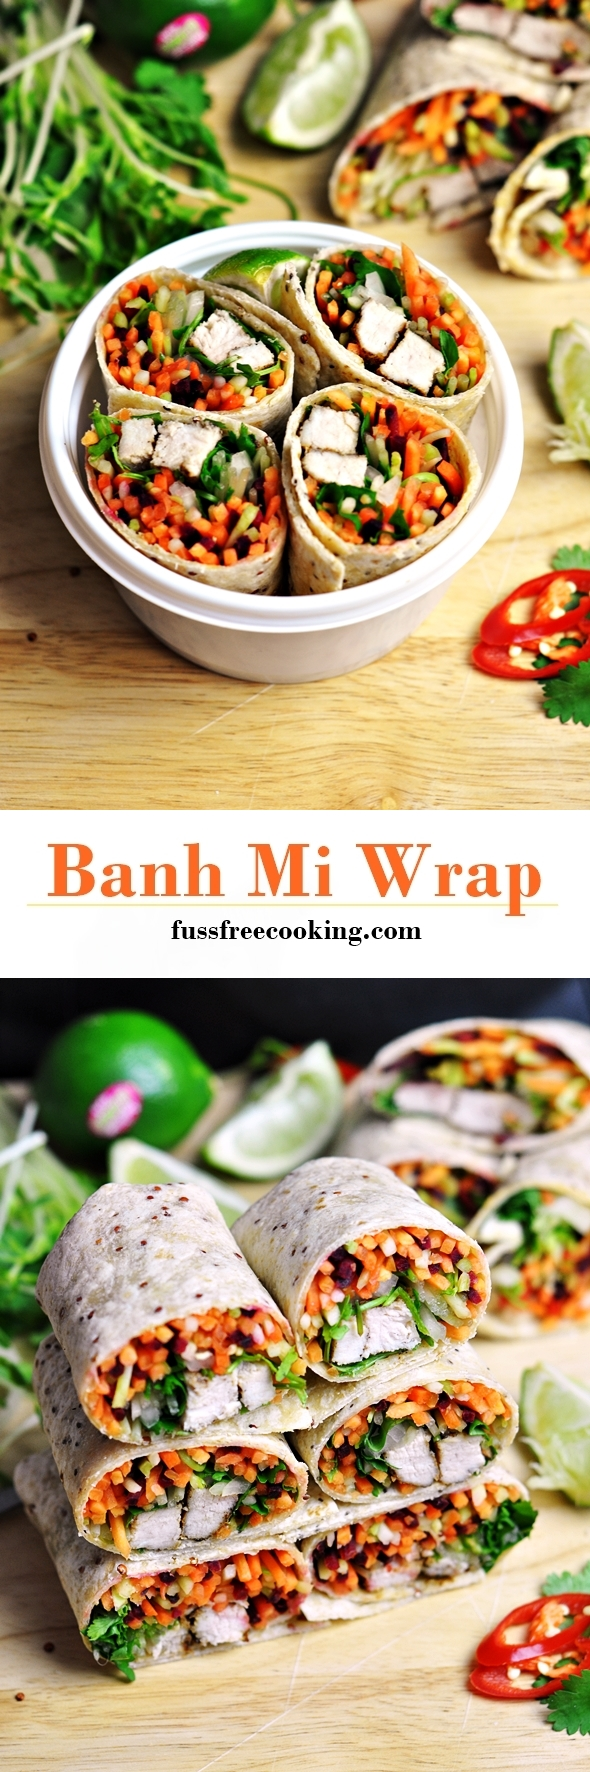 Banh Mi Wrap ft Mission Chia Wrap & Red Quinoa Wrap | www.fussfreecooking.com